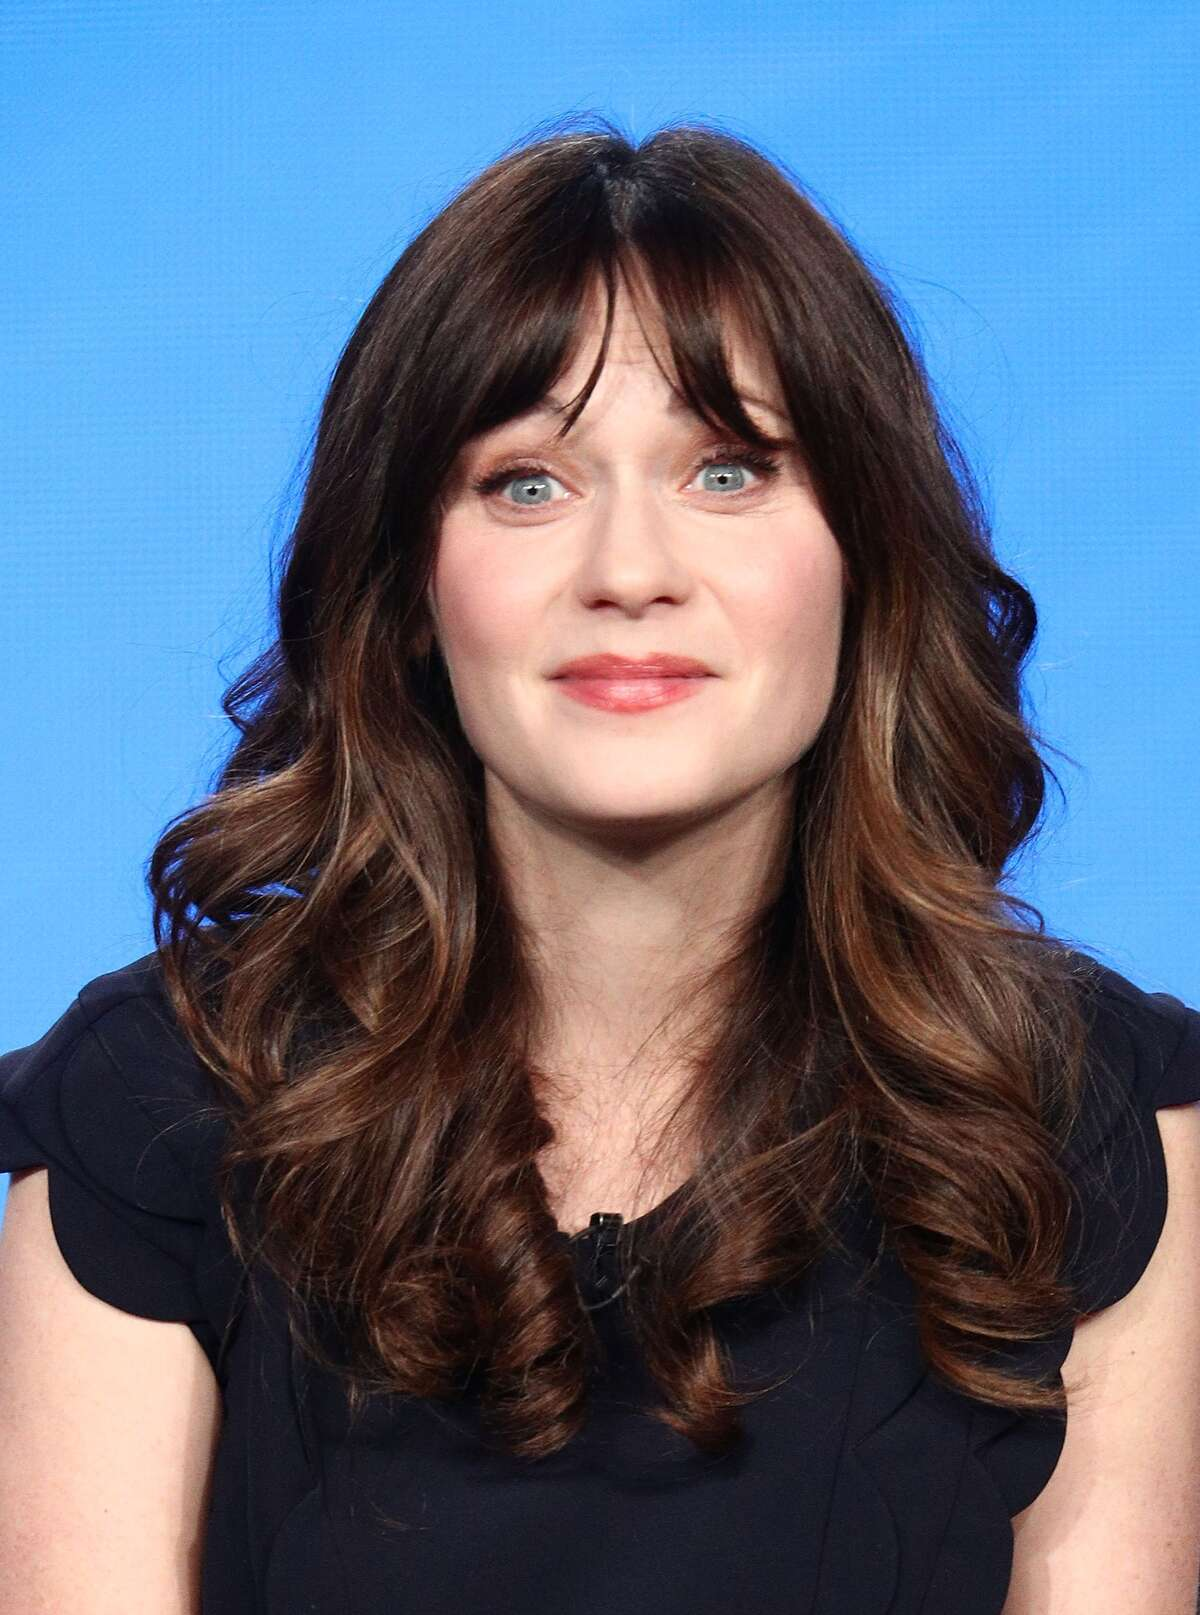 Actress Zooey Deschanel Deschanel is among the celebrities supporting Biden, according to CBS News.